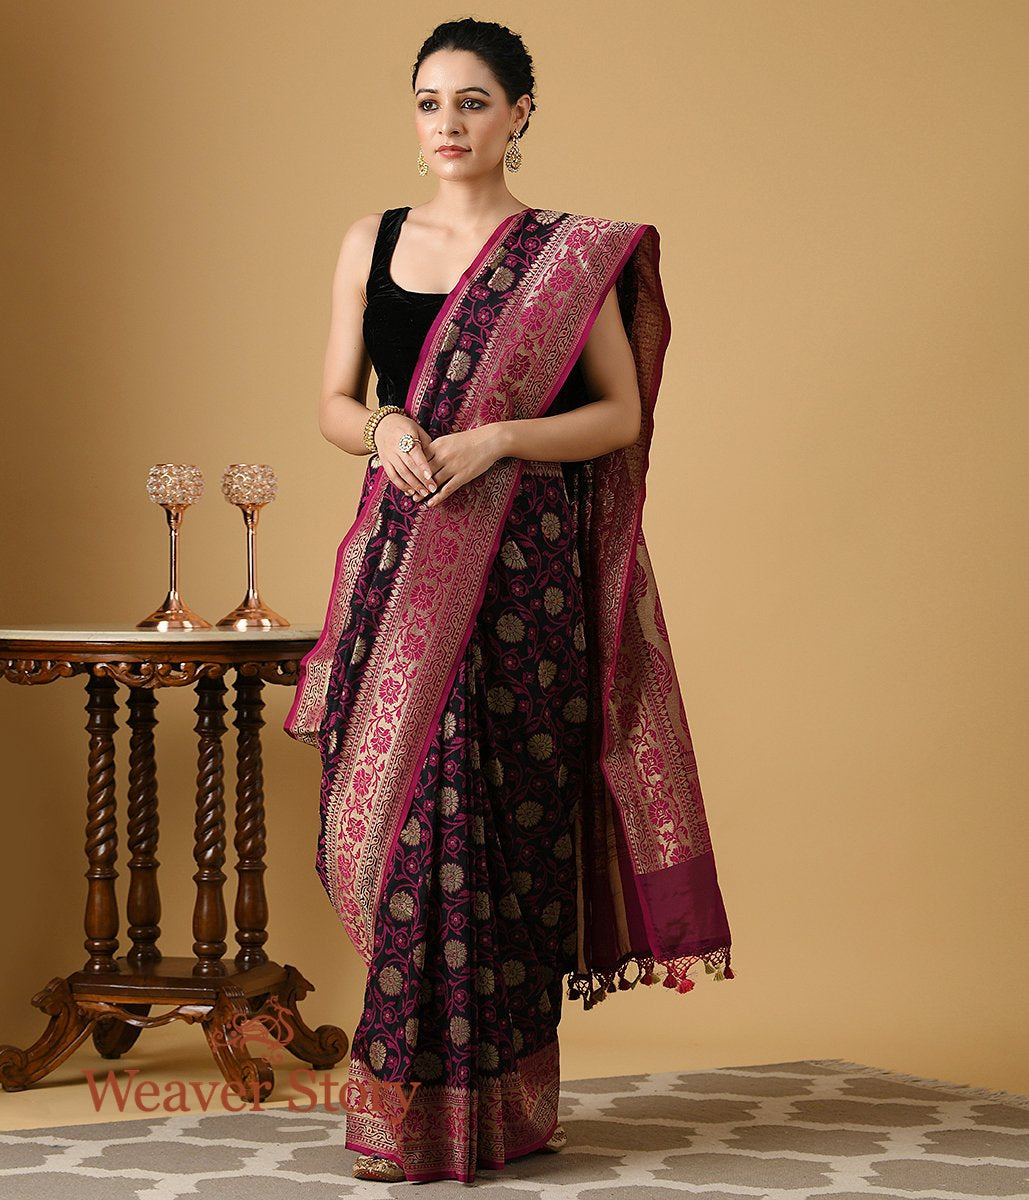 Handwoven Summer Silk Banarasi Saree in Black and Pink